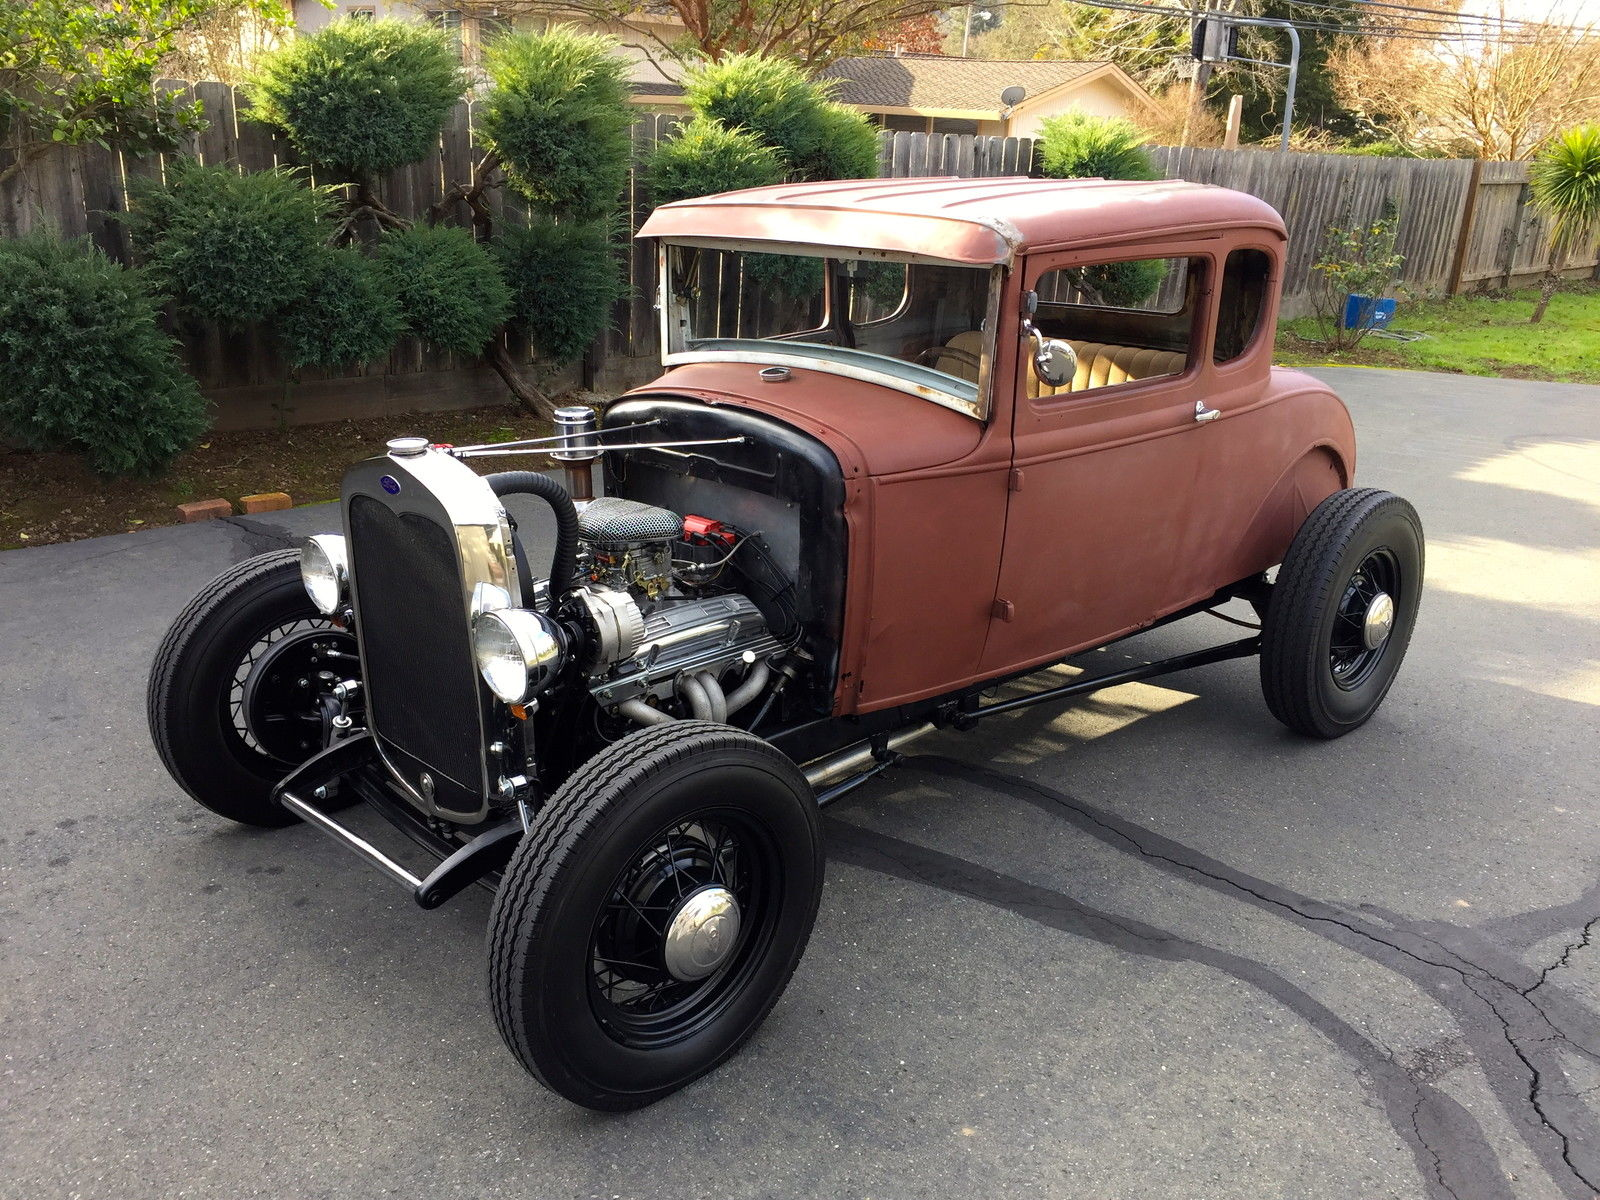 1931 Ford Model A Coupe Hot Rod V8 California Car 1928